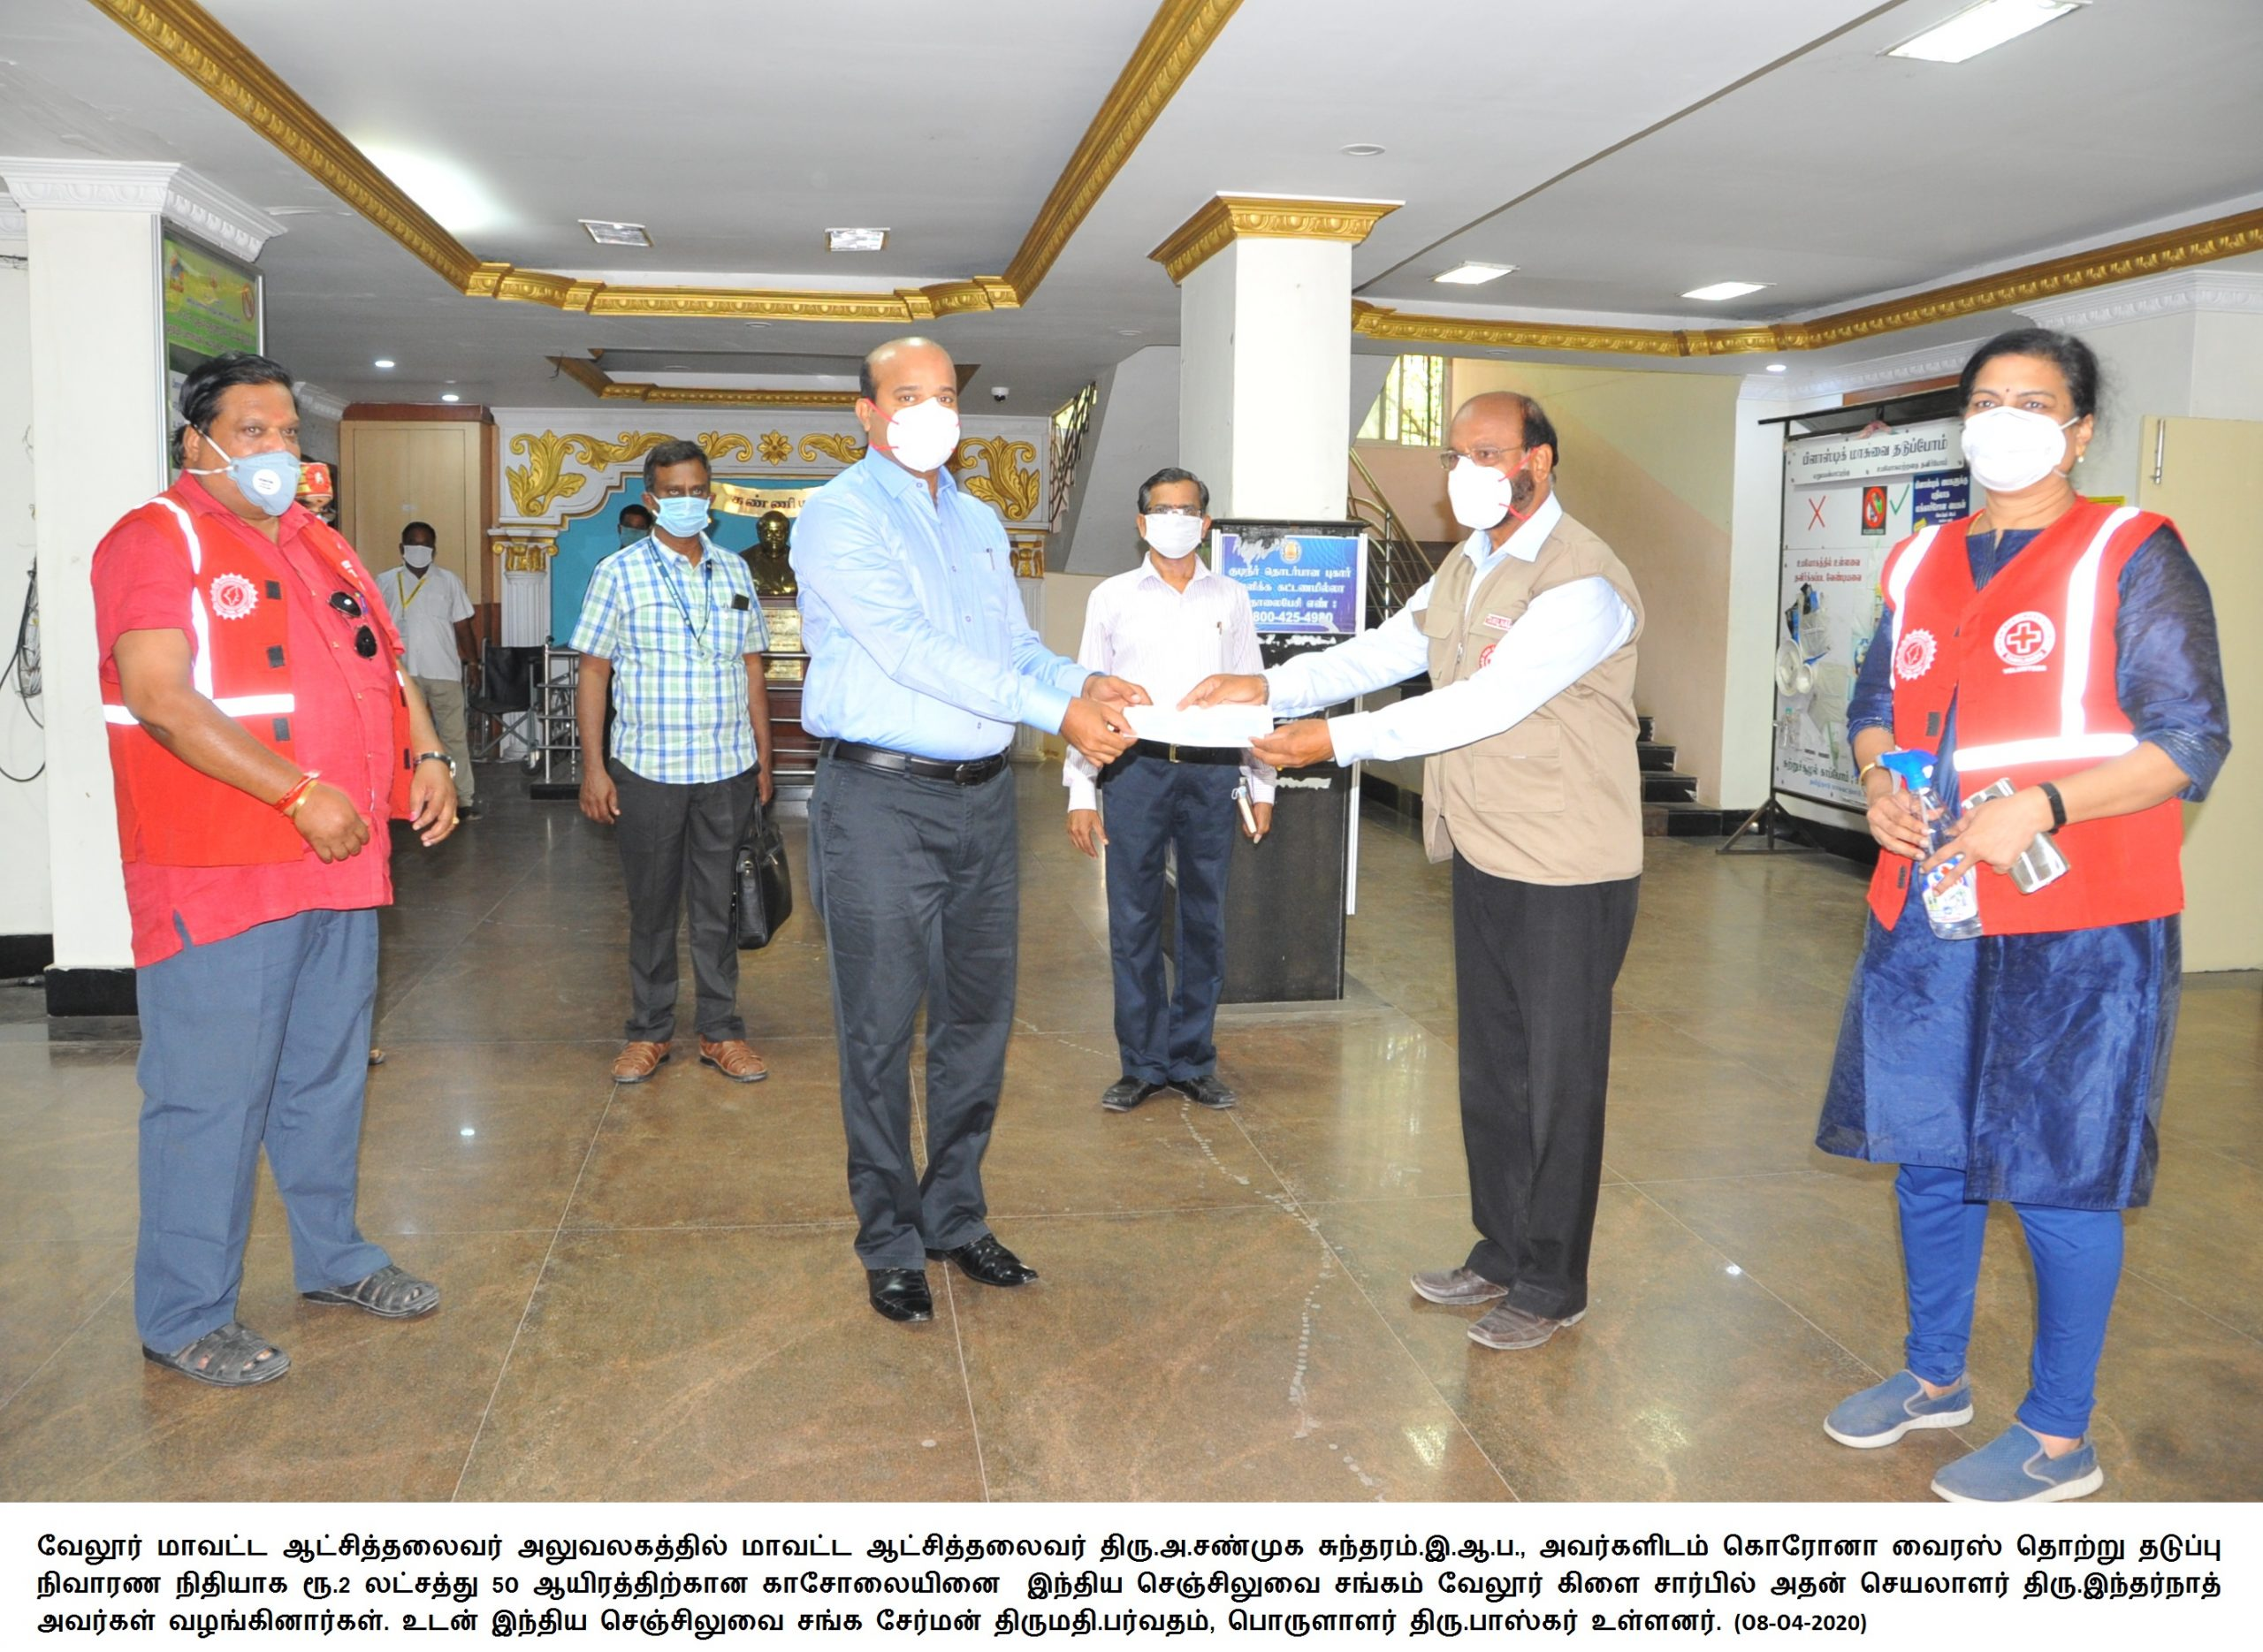 Indian Red Cross Vellore Branch Given Corona Relief Fund 08-04-2020